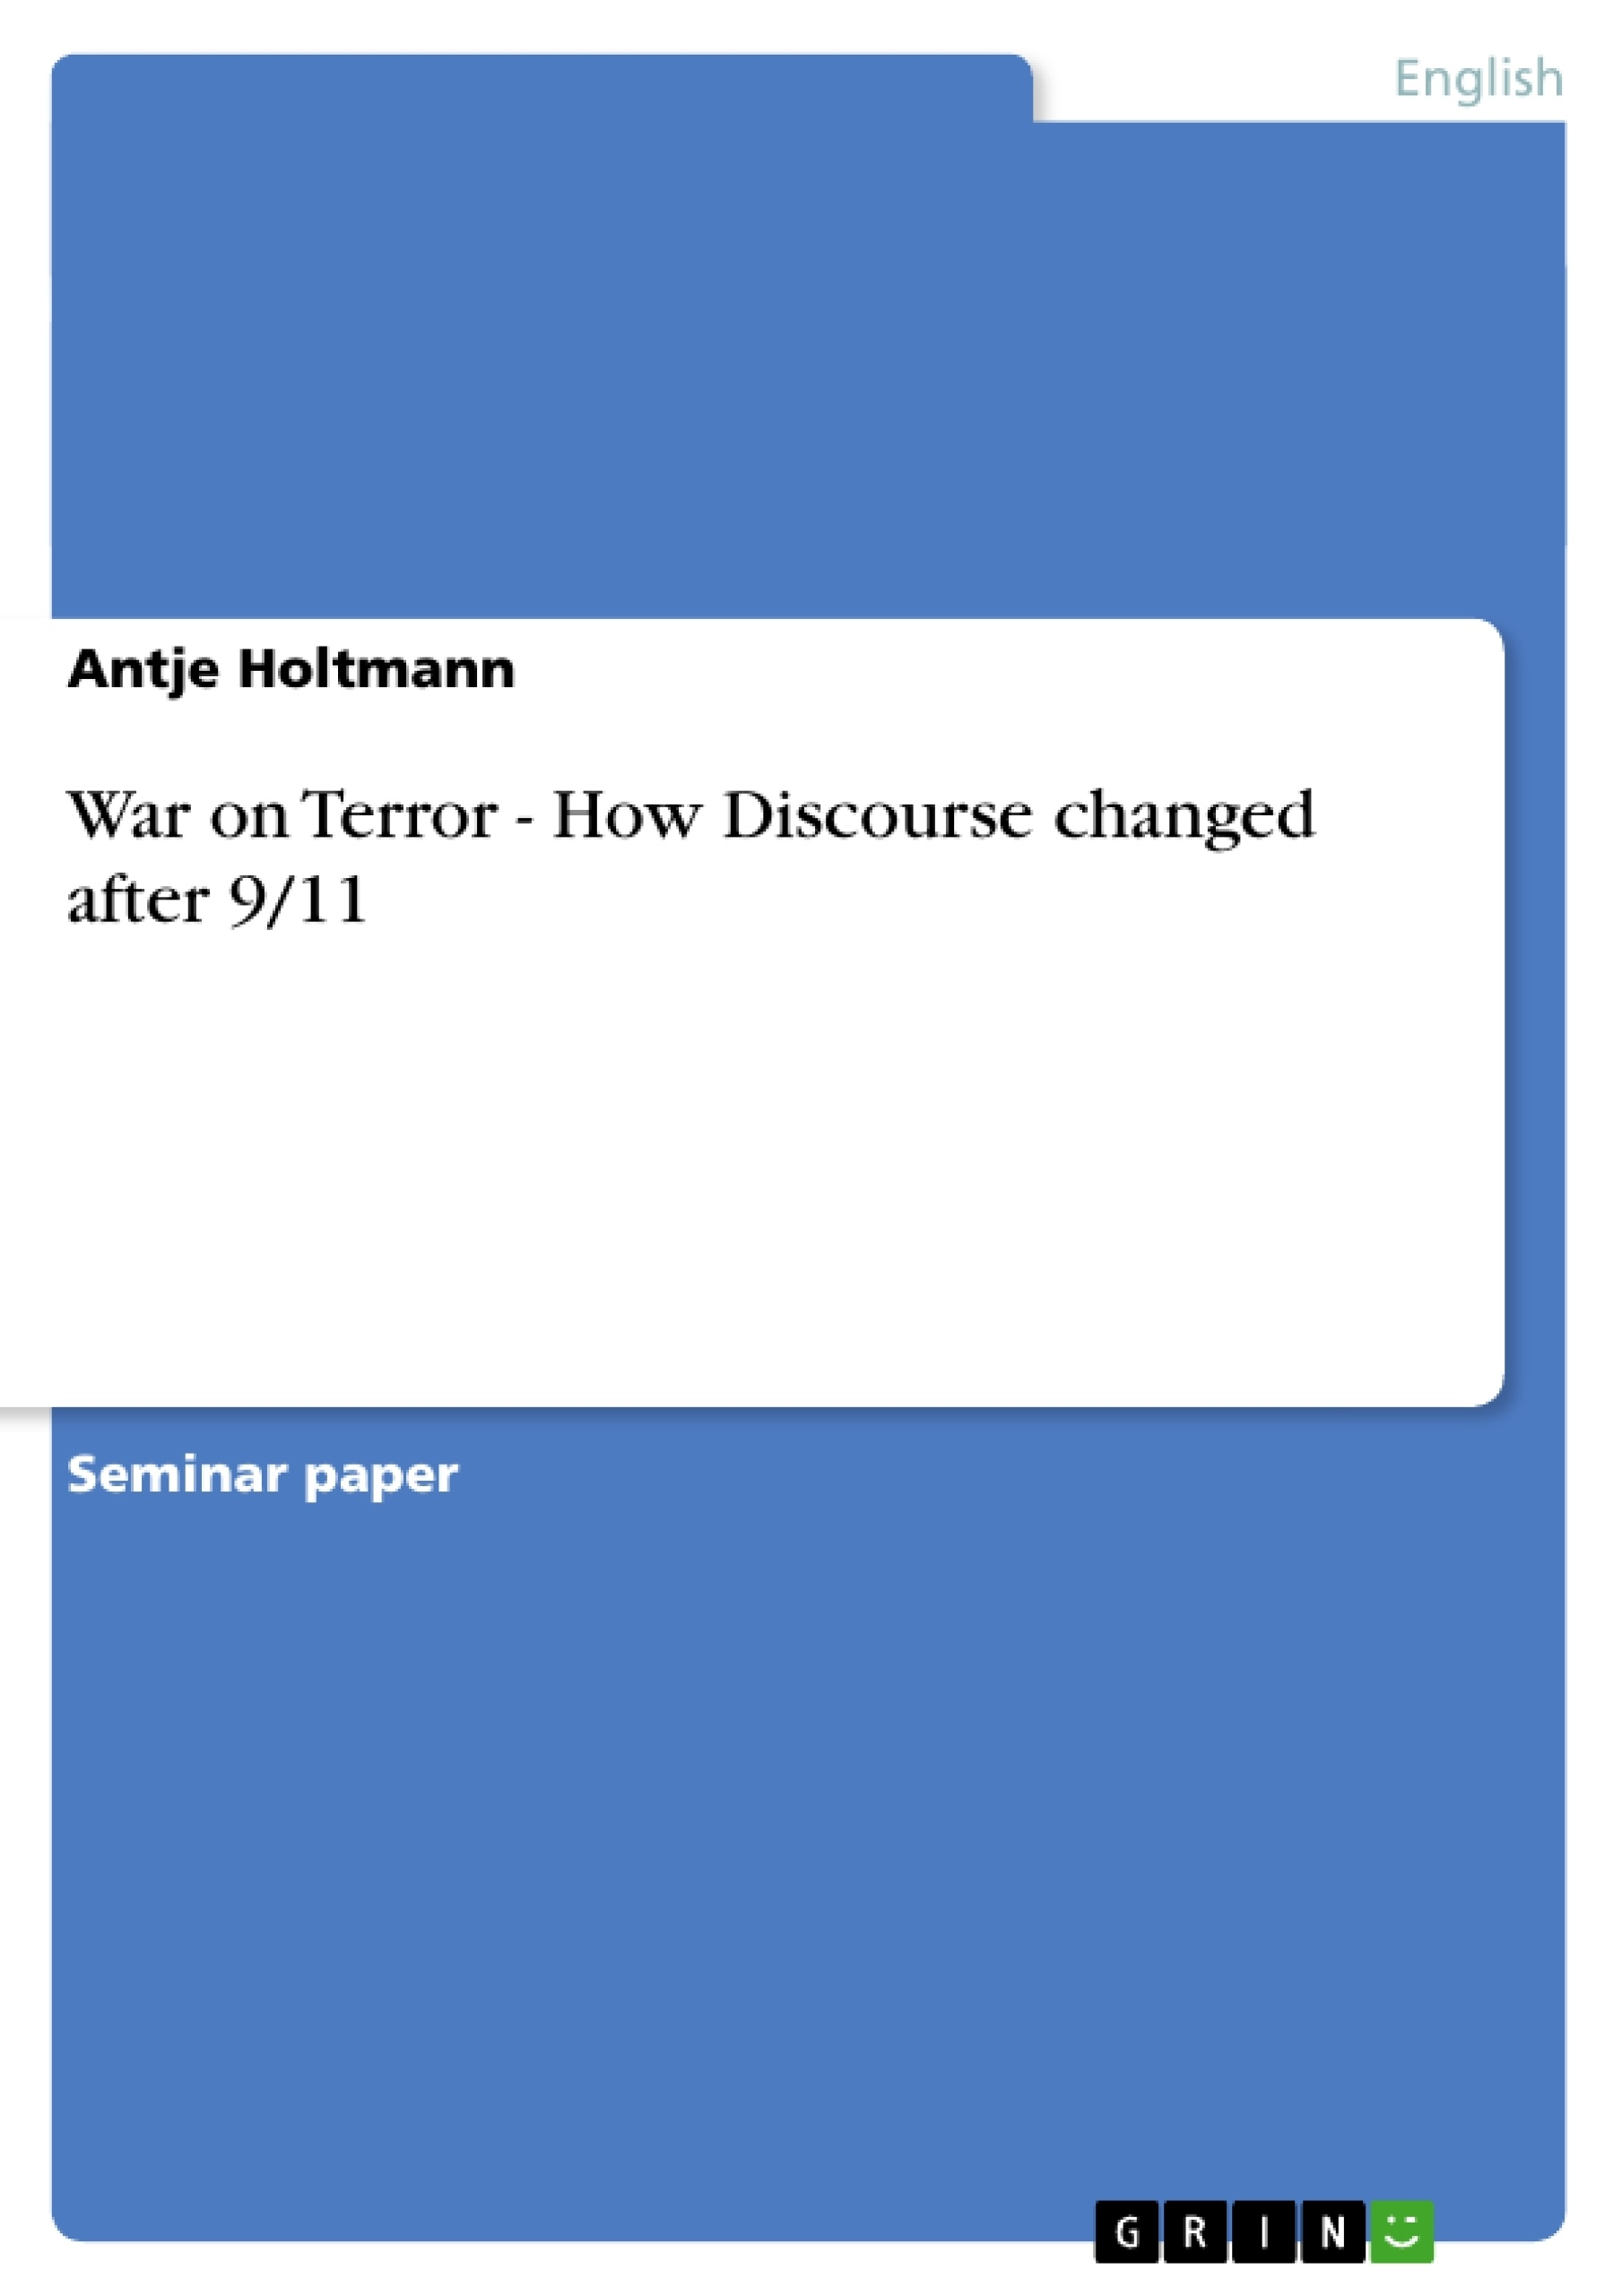 Title: War on Terror - How Discourse changed after 9/11